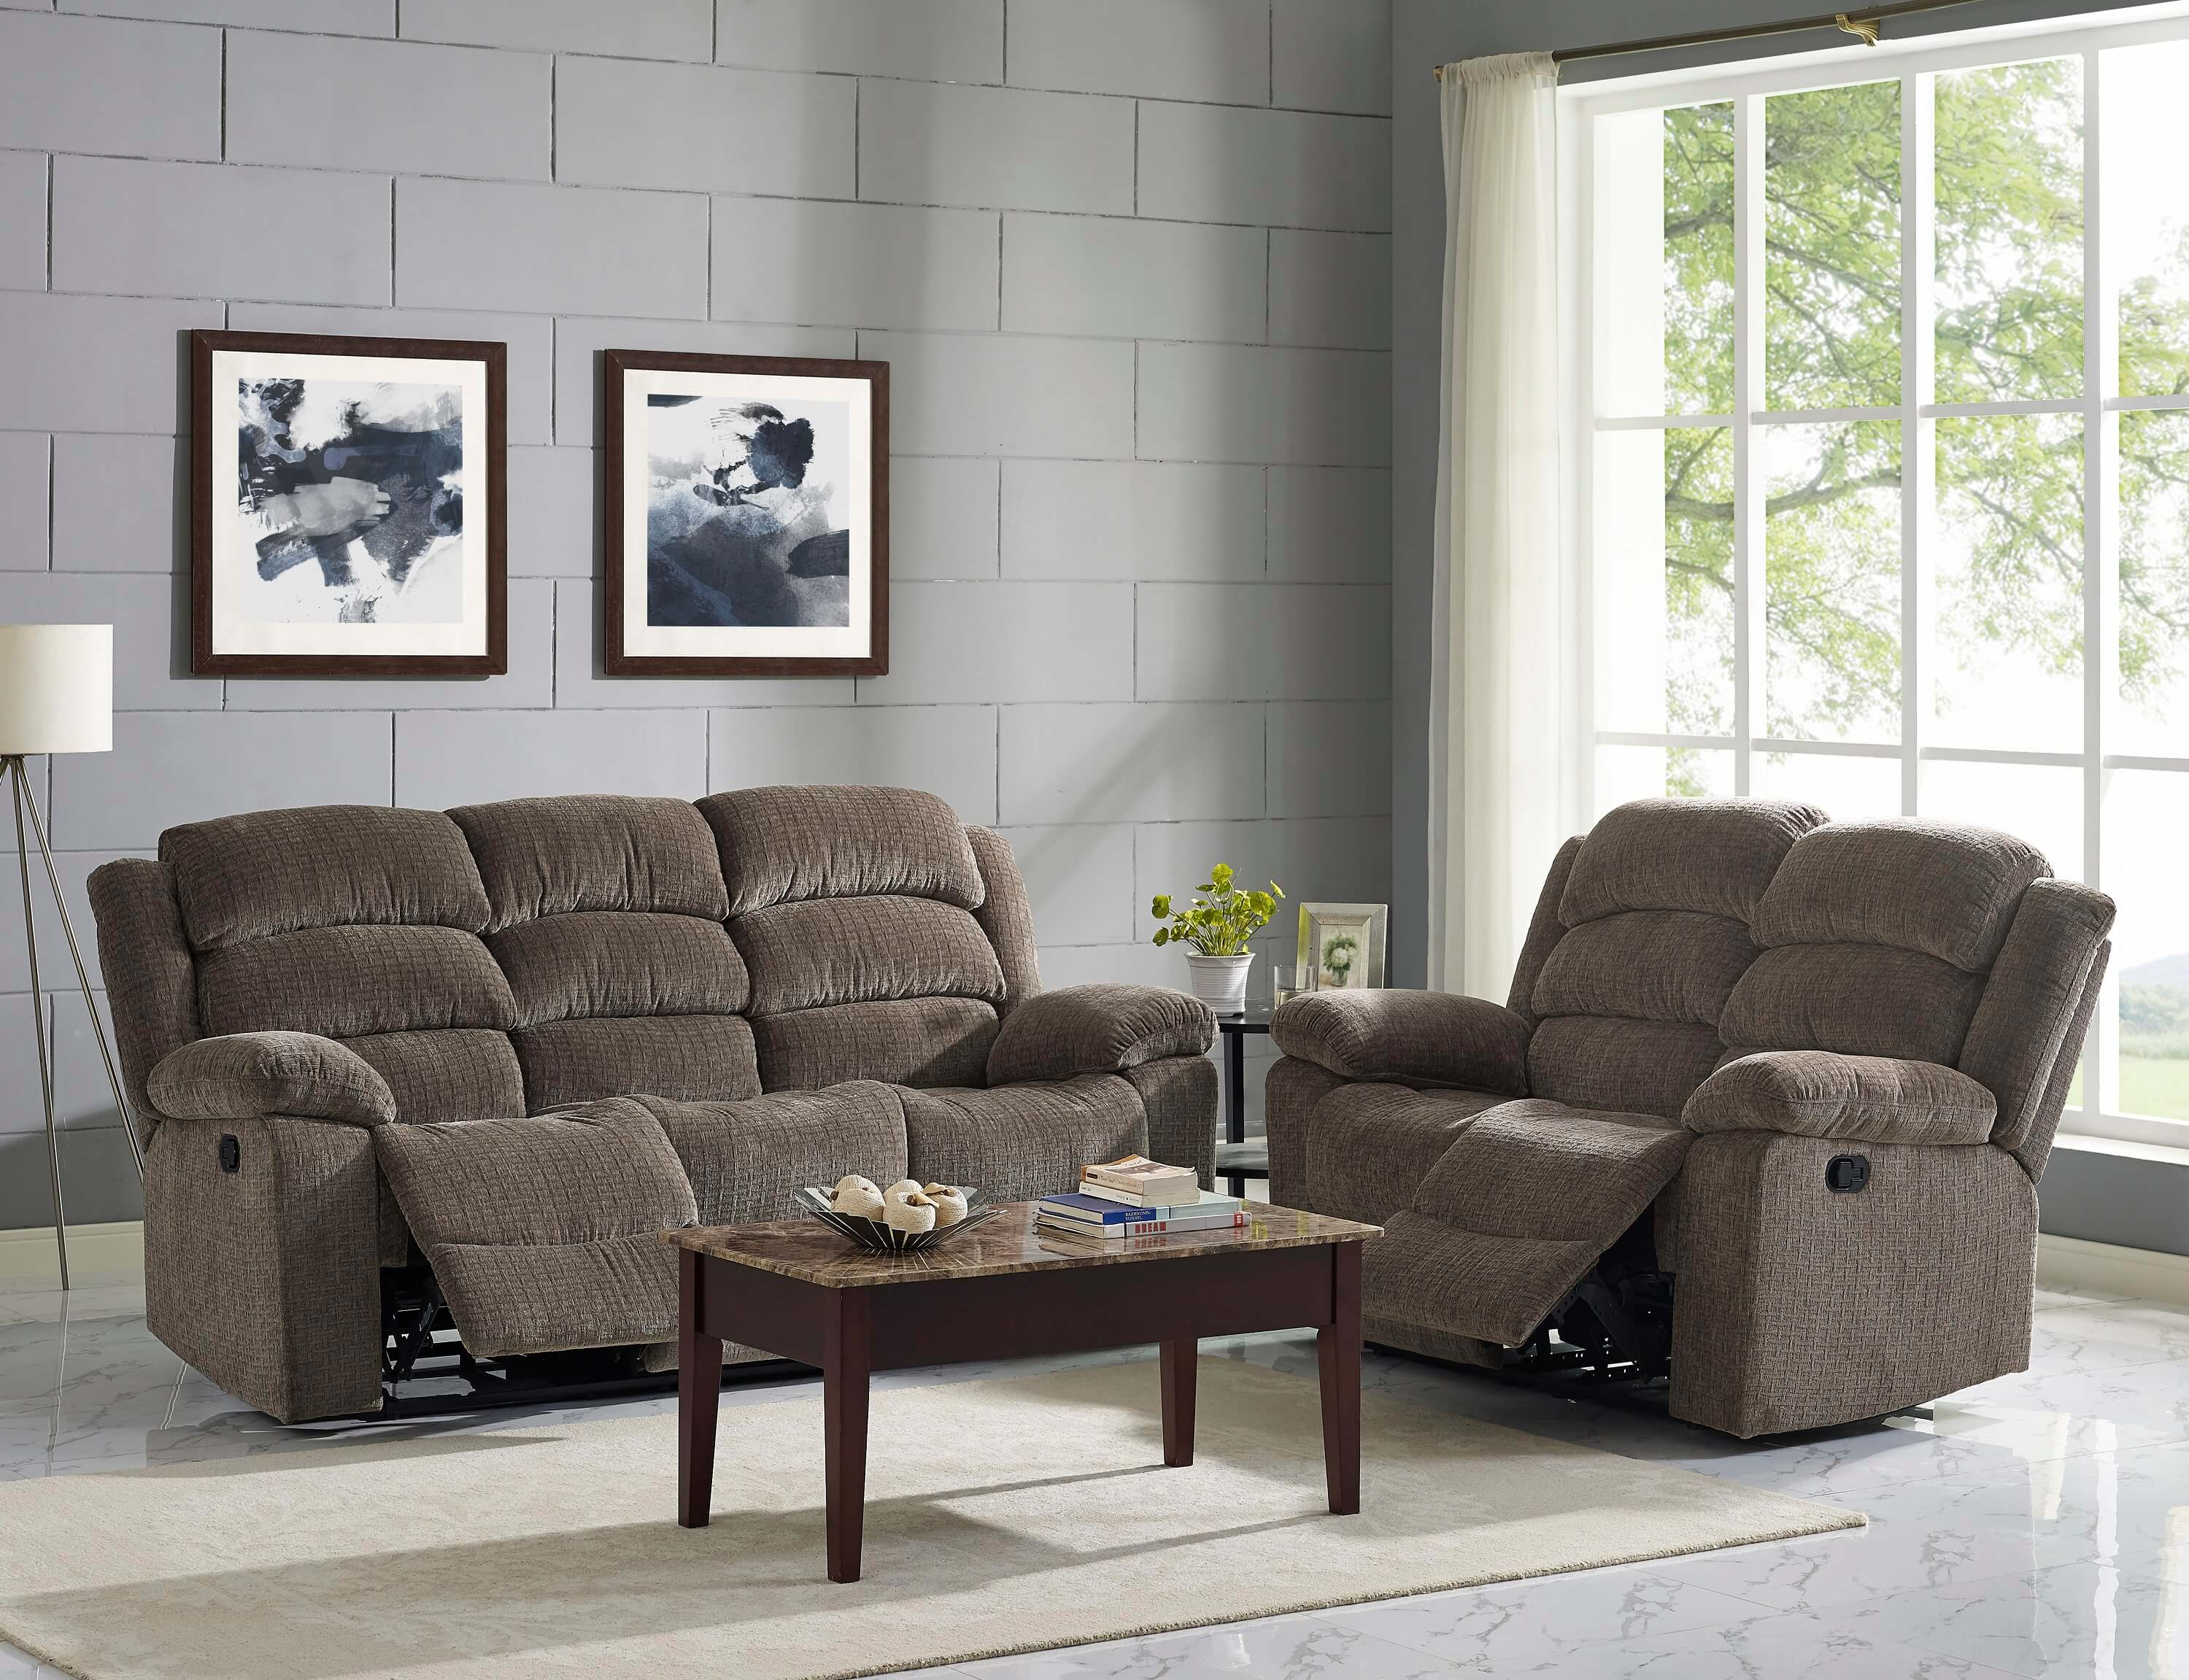 motion living room furniture reclining sofa and loveseat by new classic 15640